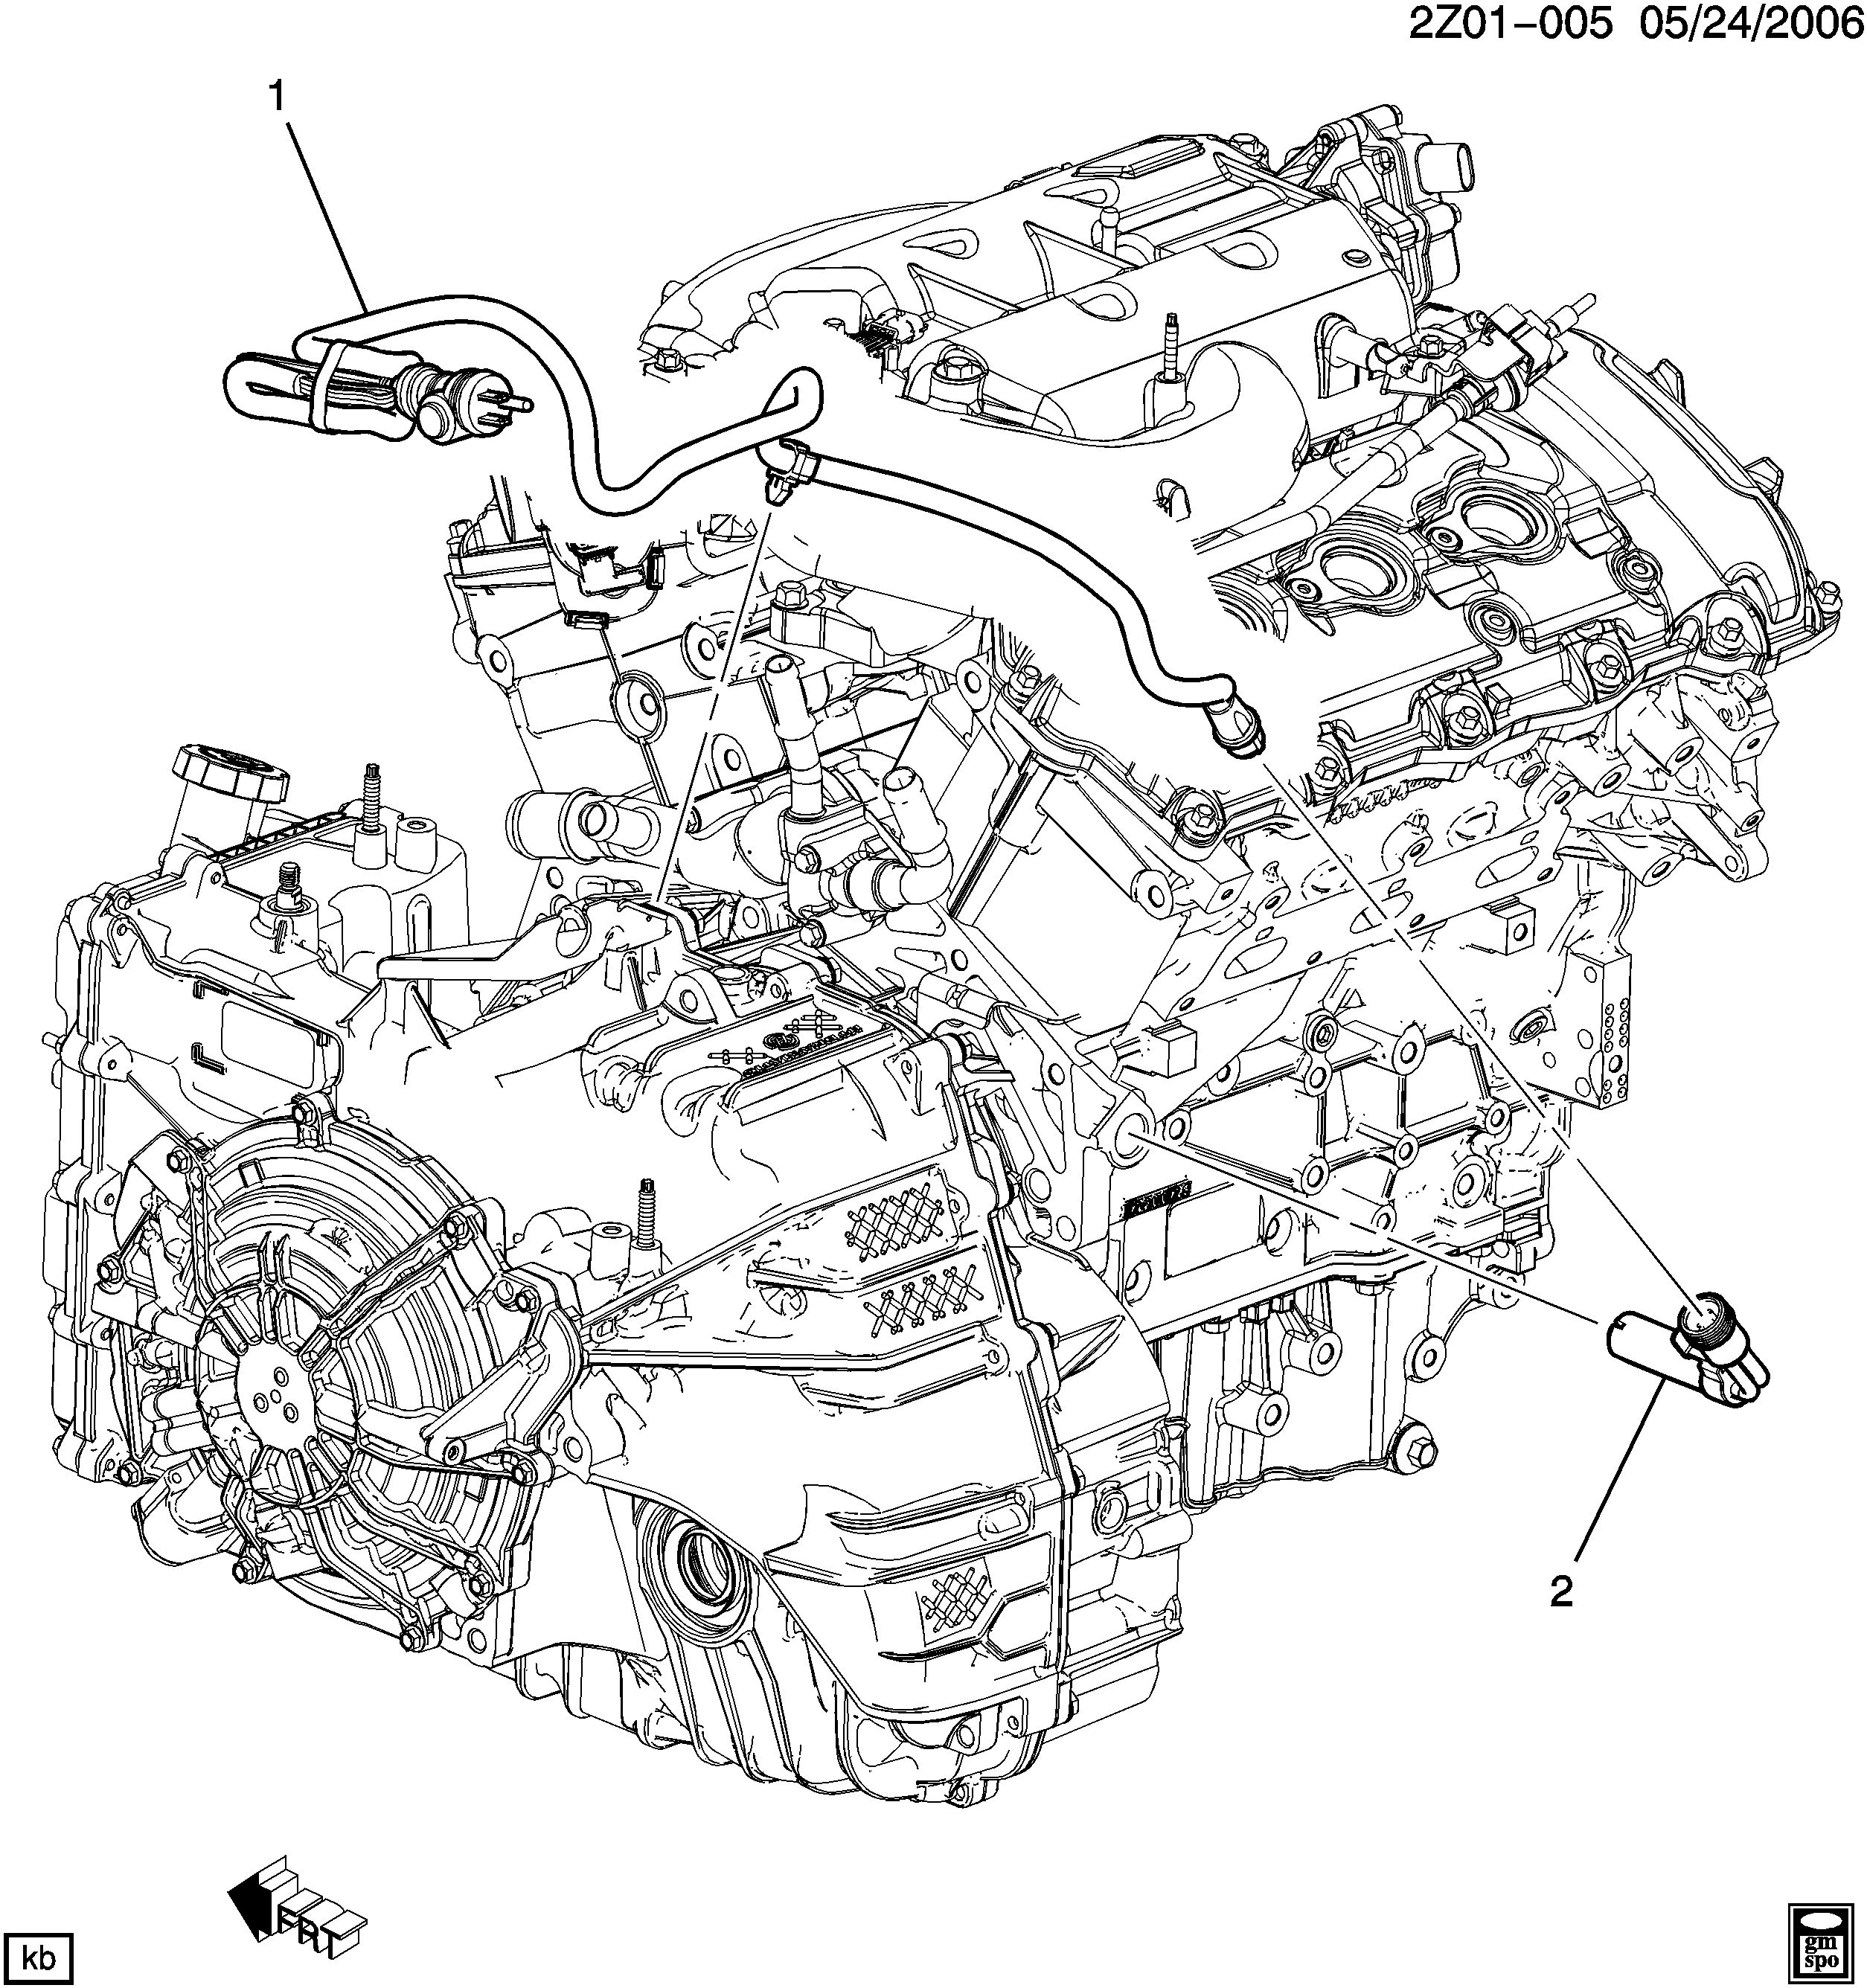 Pontiac G6 Engine Diagram - Wiring Diagram